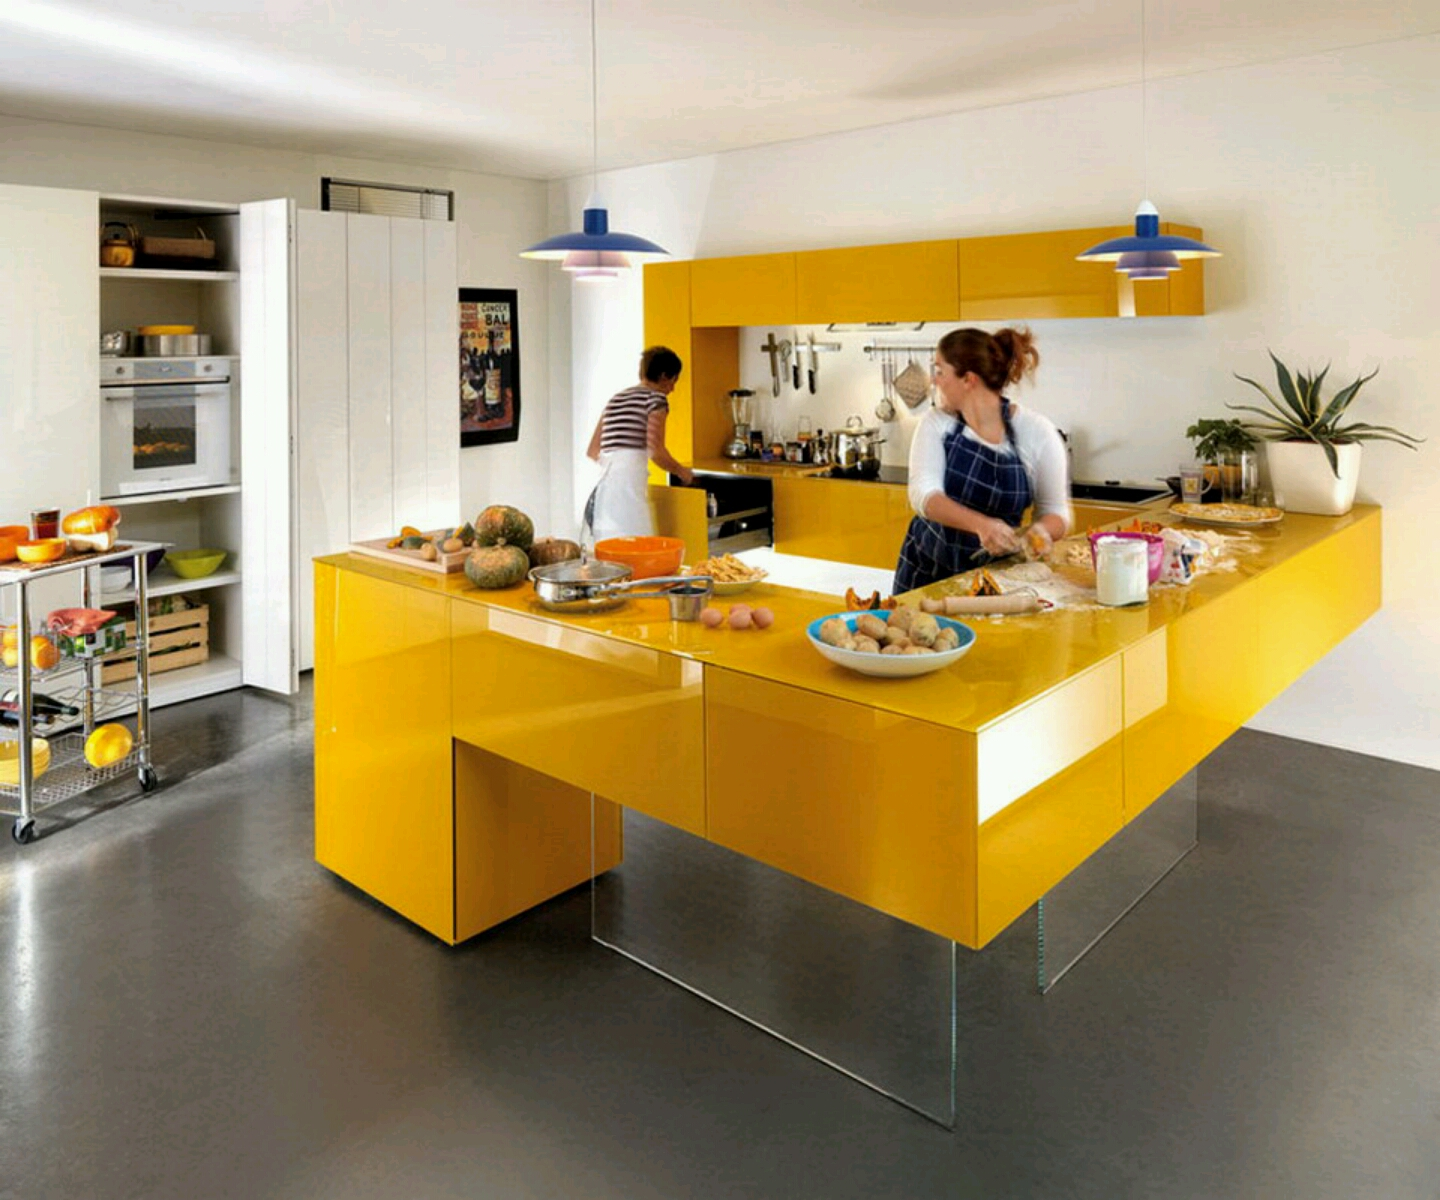 Modern kitchen cabinets designs ideas furniture gallery Kitchen furniture ideas